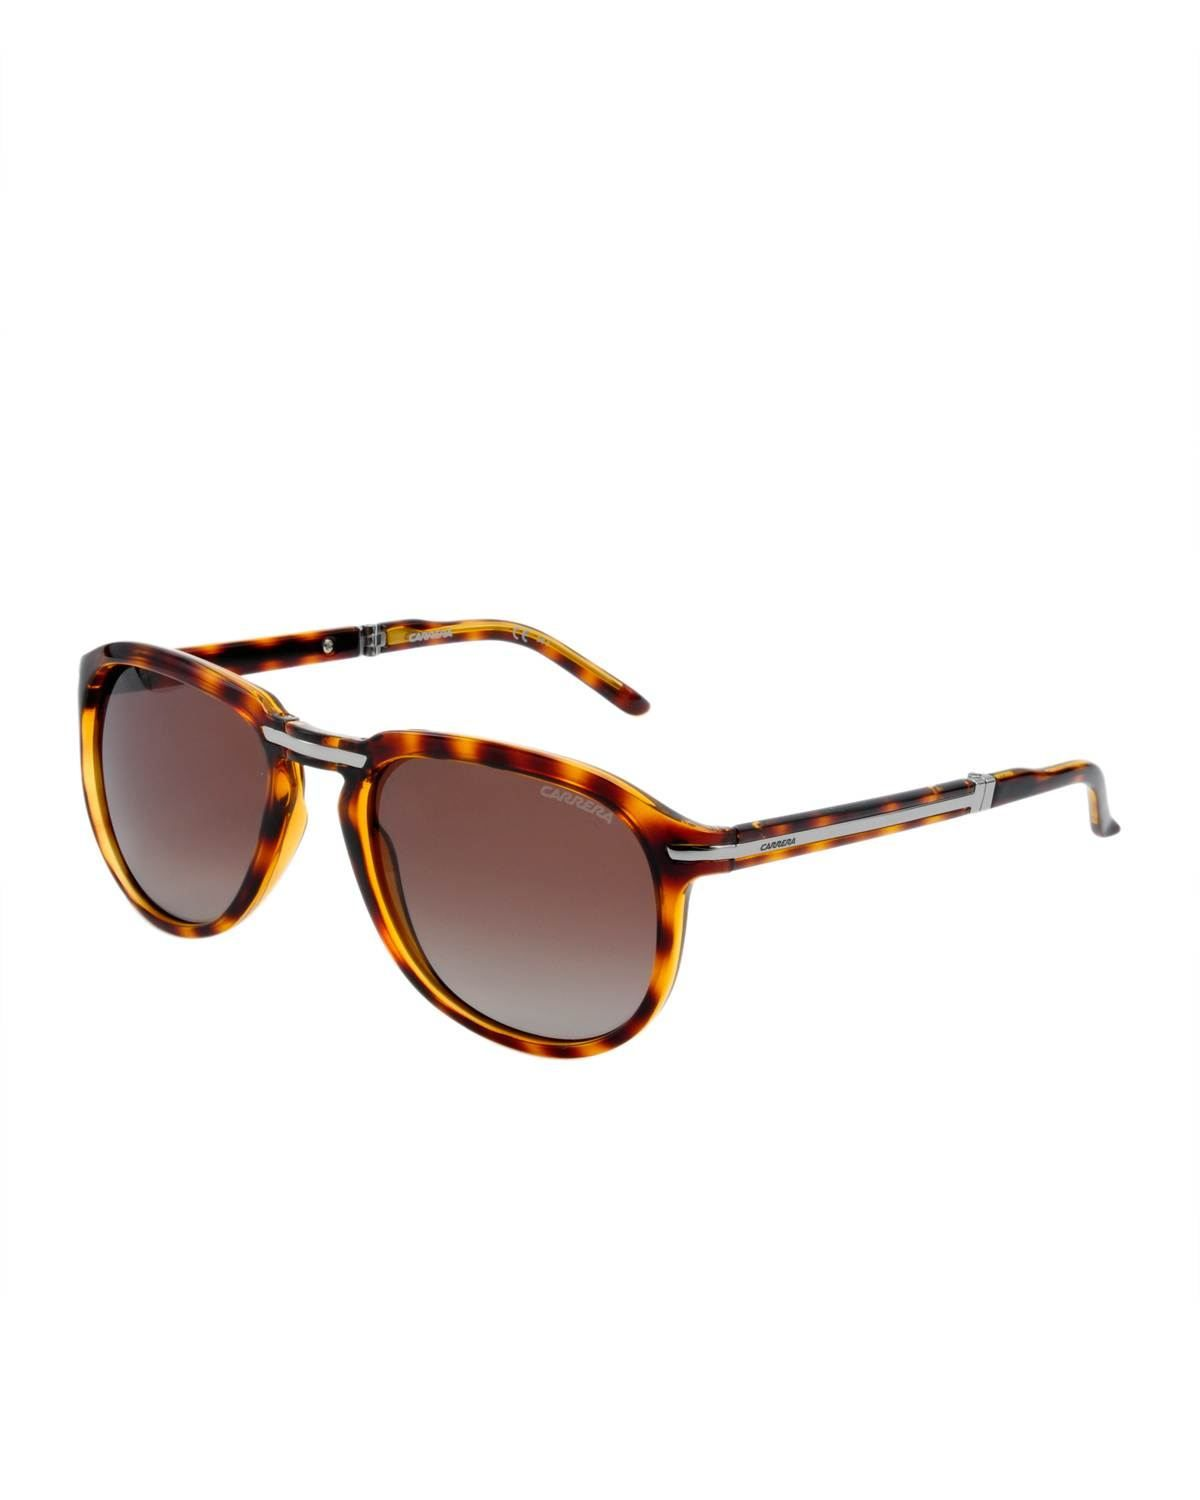 575f6e6f8 CARRERA Sunglasses for $65 at Modnique.com. Start shopping now and save  80%. Flexible return policy, 24/7 client support, authenticity guaranteed